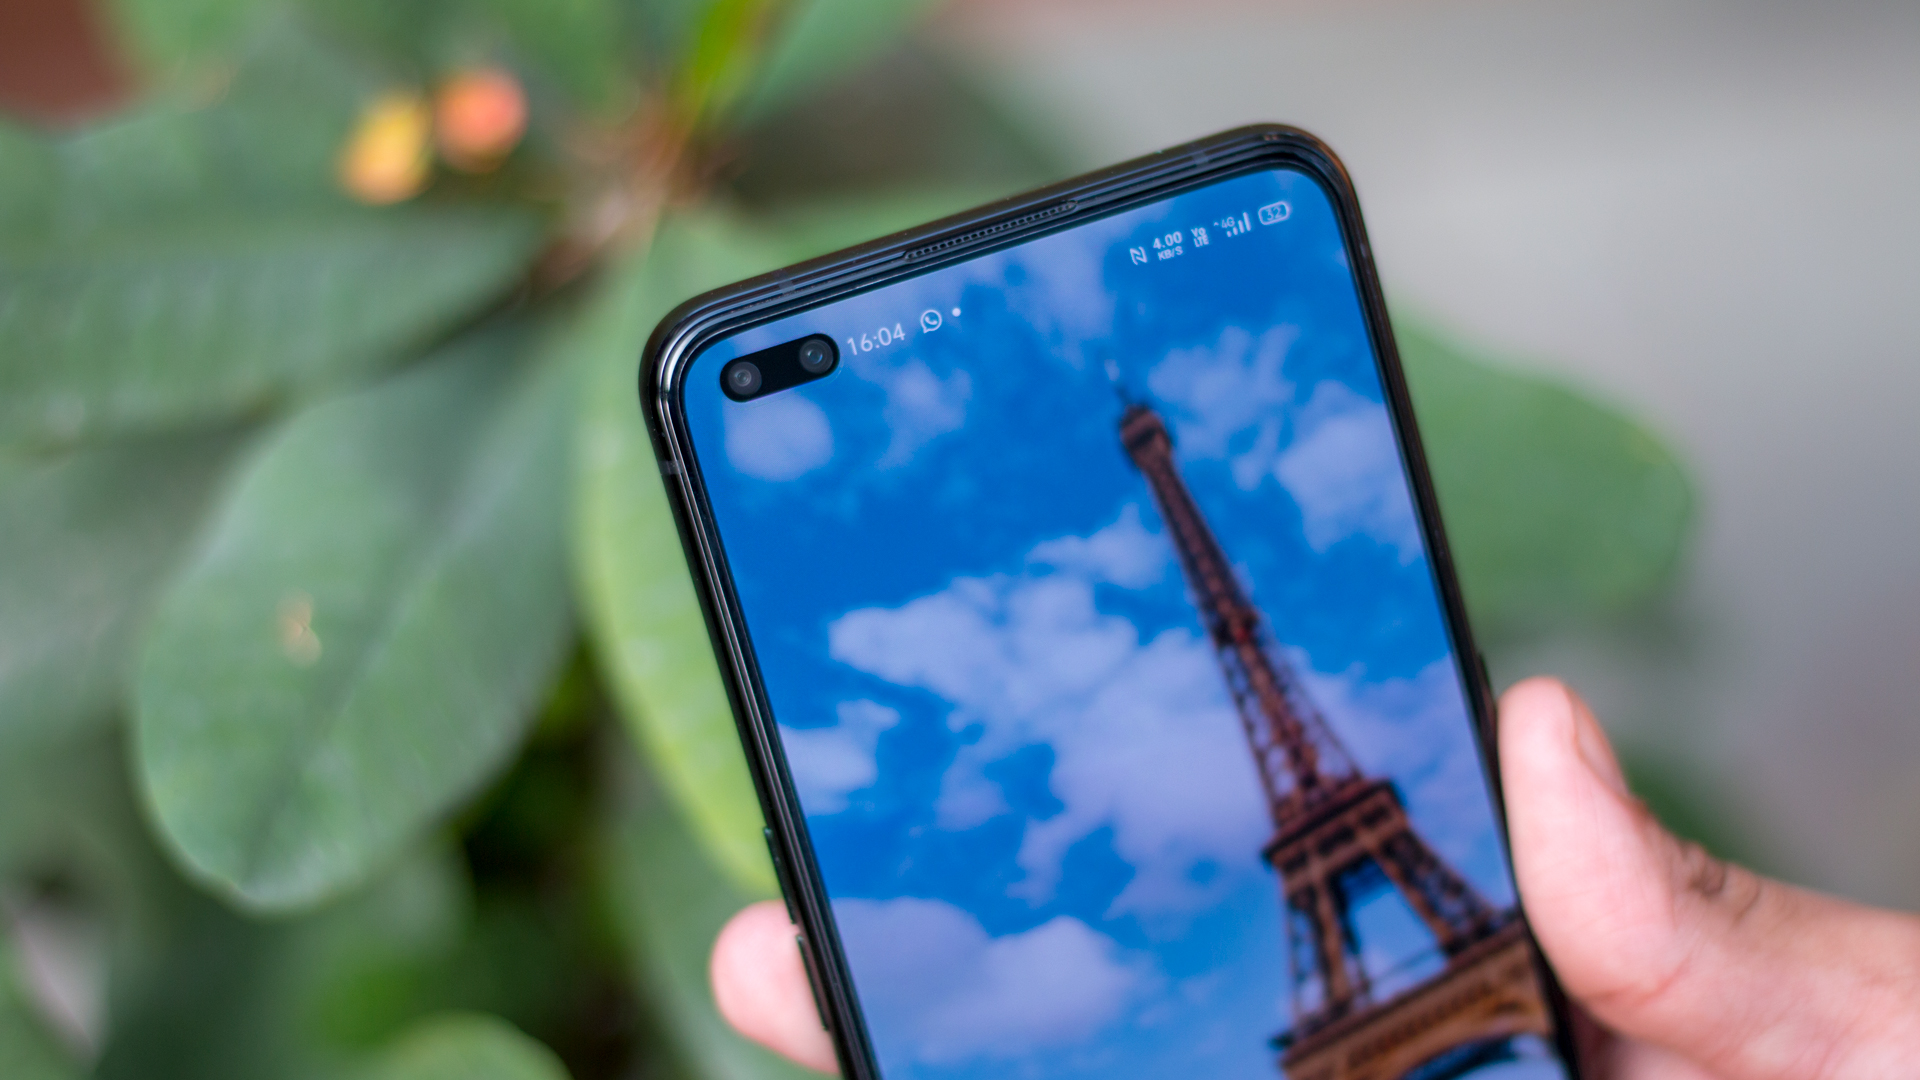 Realme X3 2 - Realme X3 Price In Nigeria And Full Specs